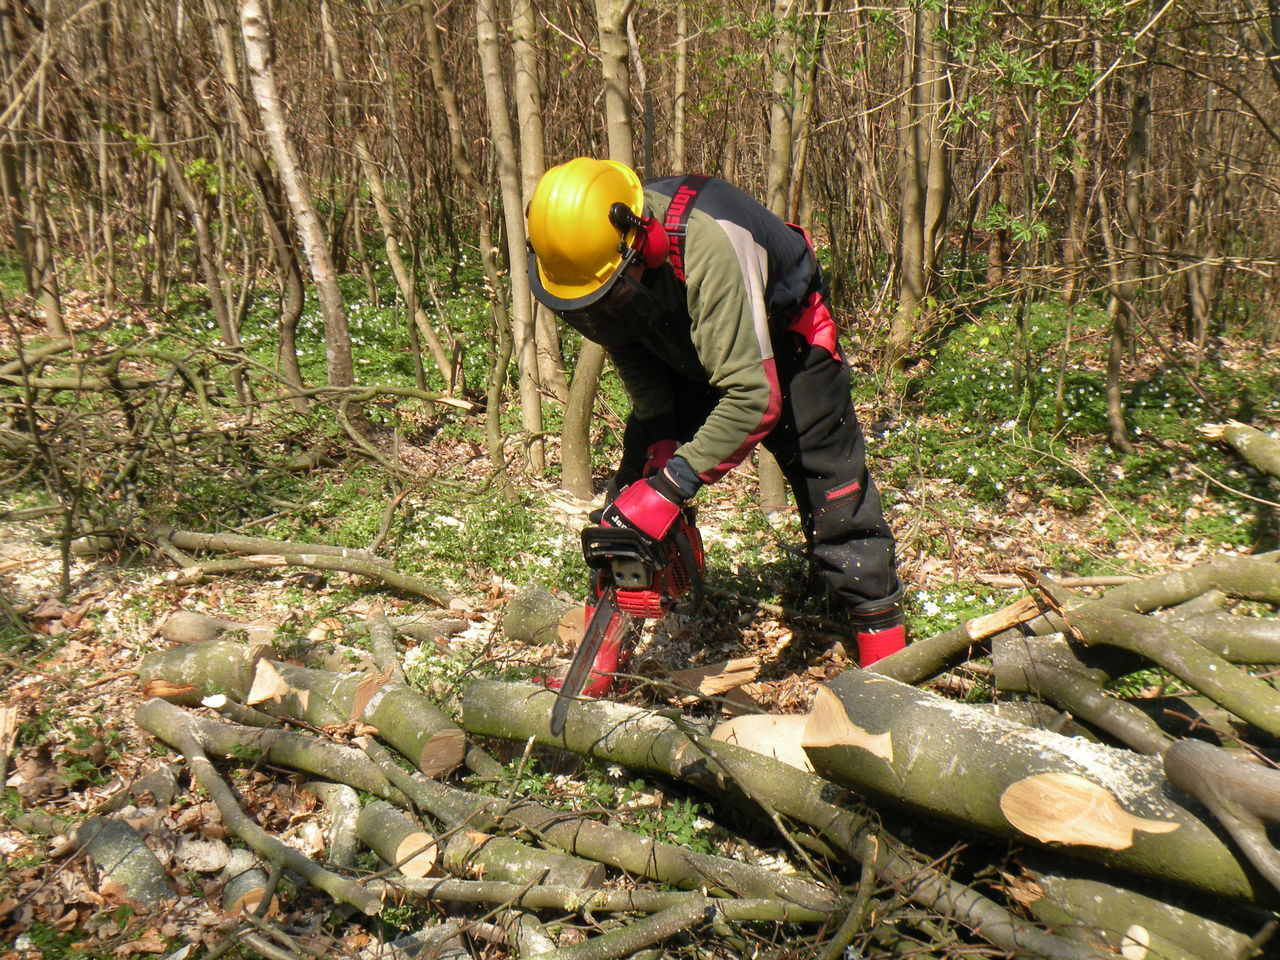 Man cutting firewood with a chainsaw in Sønderskov Forest on the island of Zealand in Denmark - Tranquility Nature Beauty In Nature Outdoors Scenics Tranquil Scene Outline Man Chainsaw Firewood Forest TakeoverContrast in Sønderskov Forest on the island of Zealand in Denmark